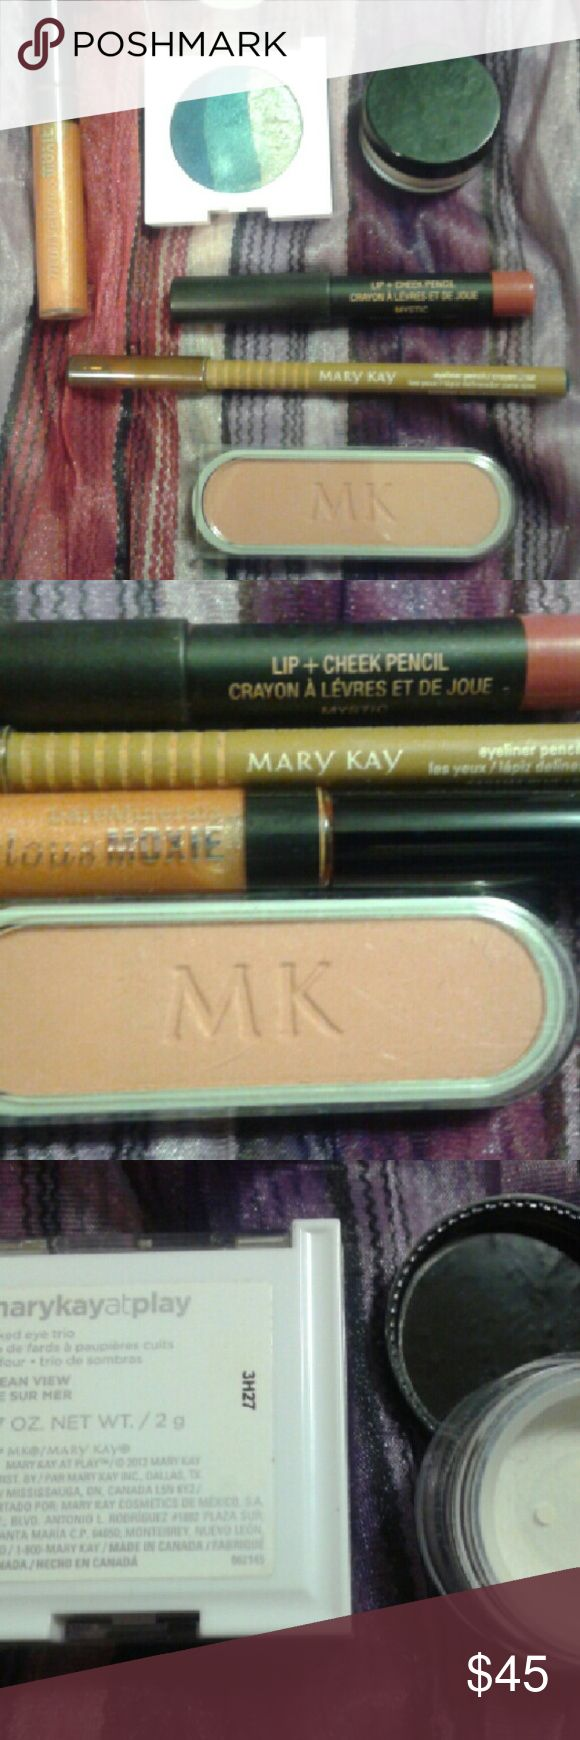 Mary Kay Makeup Bundle w/ Lip/Cheek Pencil This beautiful makeup lot comes with Mary Kay bag, eye liner in blue,  cheek color,  Bare Mineral lip gloss, lip/cheek stain pencil, sheer mineral powder, and sunset blue eye shadow trio. Goes great with all skin types/tones. New BareMinerals  Makeup Eyeshadow